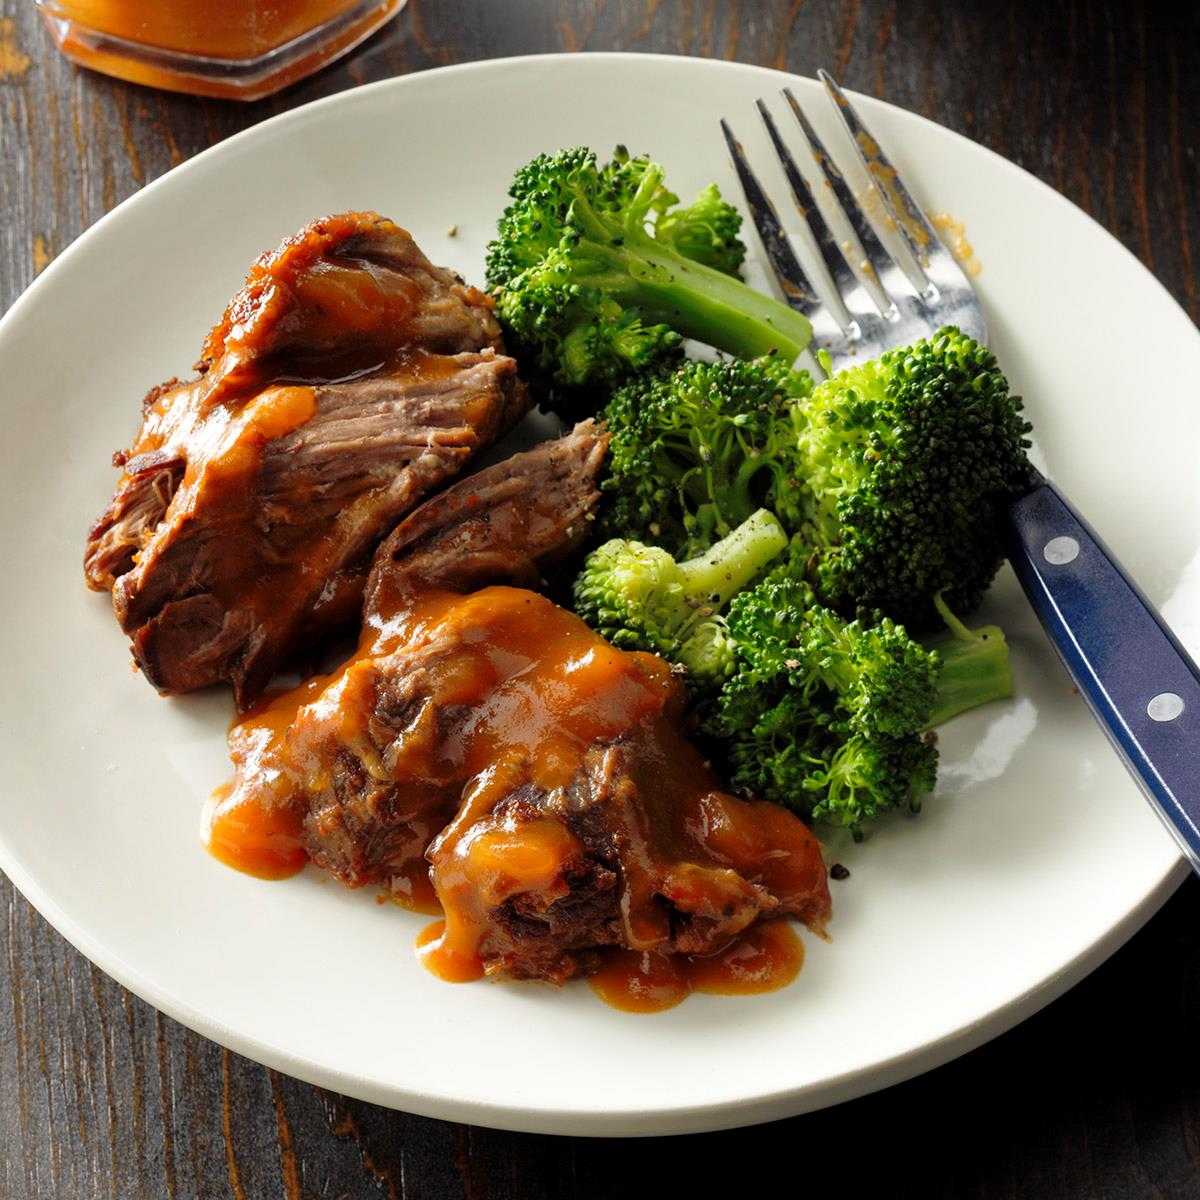 What To Have For Dinner: Beef Roast Dinner Recipe